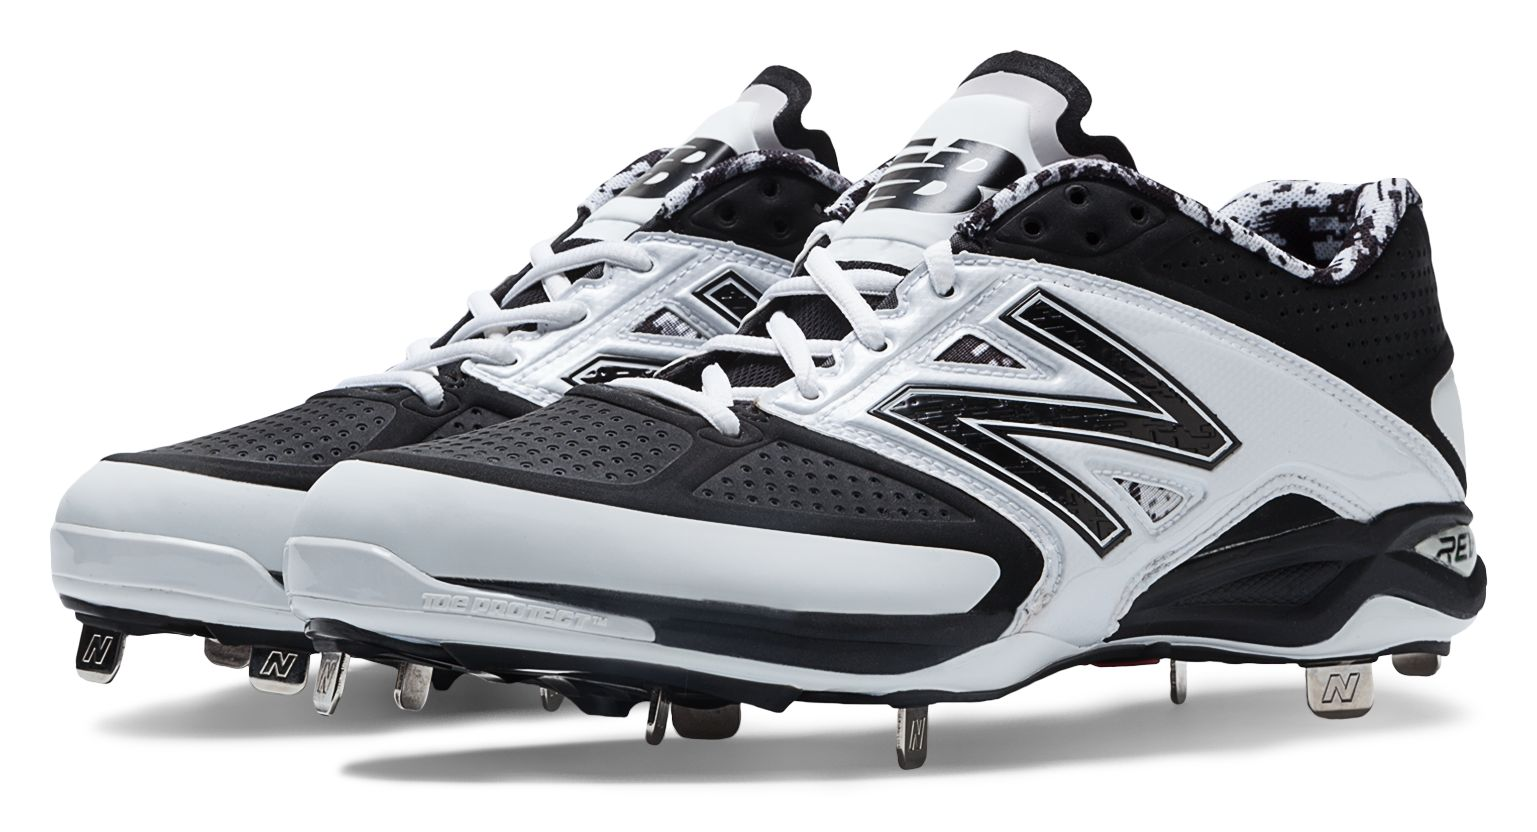 new balance men's 4040v2 low metal baseball cleats